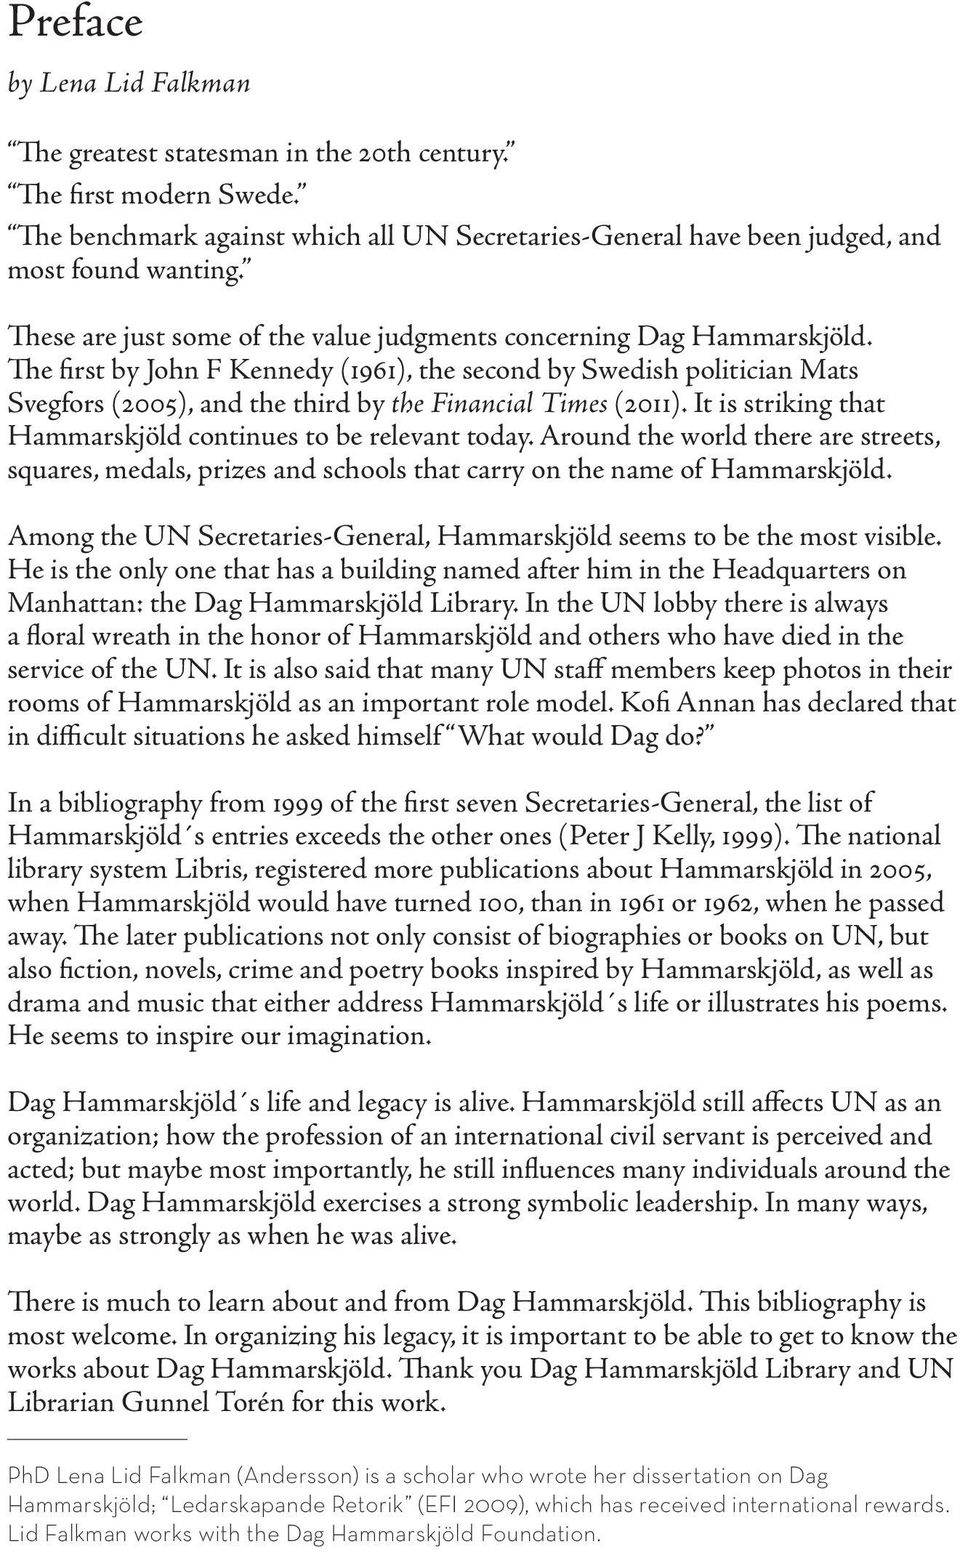 The first by John F Kennedy (1961), the second by Swedish politician Mats Svegfors (2005), and the third by the Financial Times (2011). It is striking that Hammarskjöld continues to be relevant today.